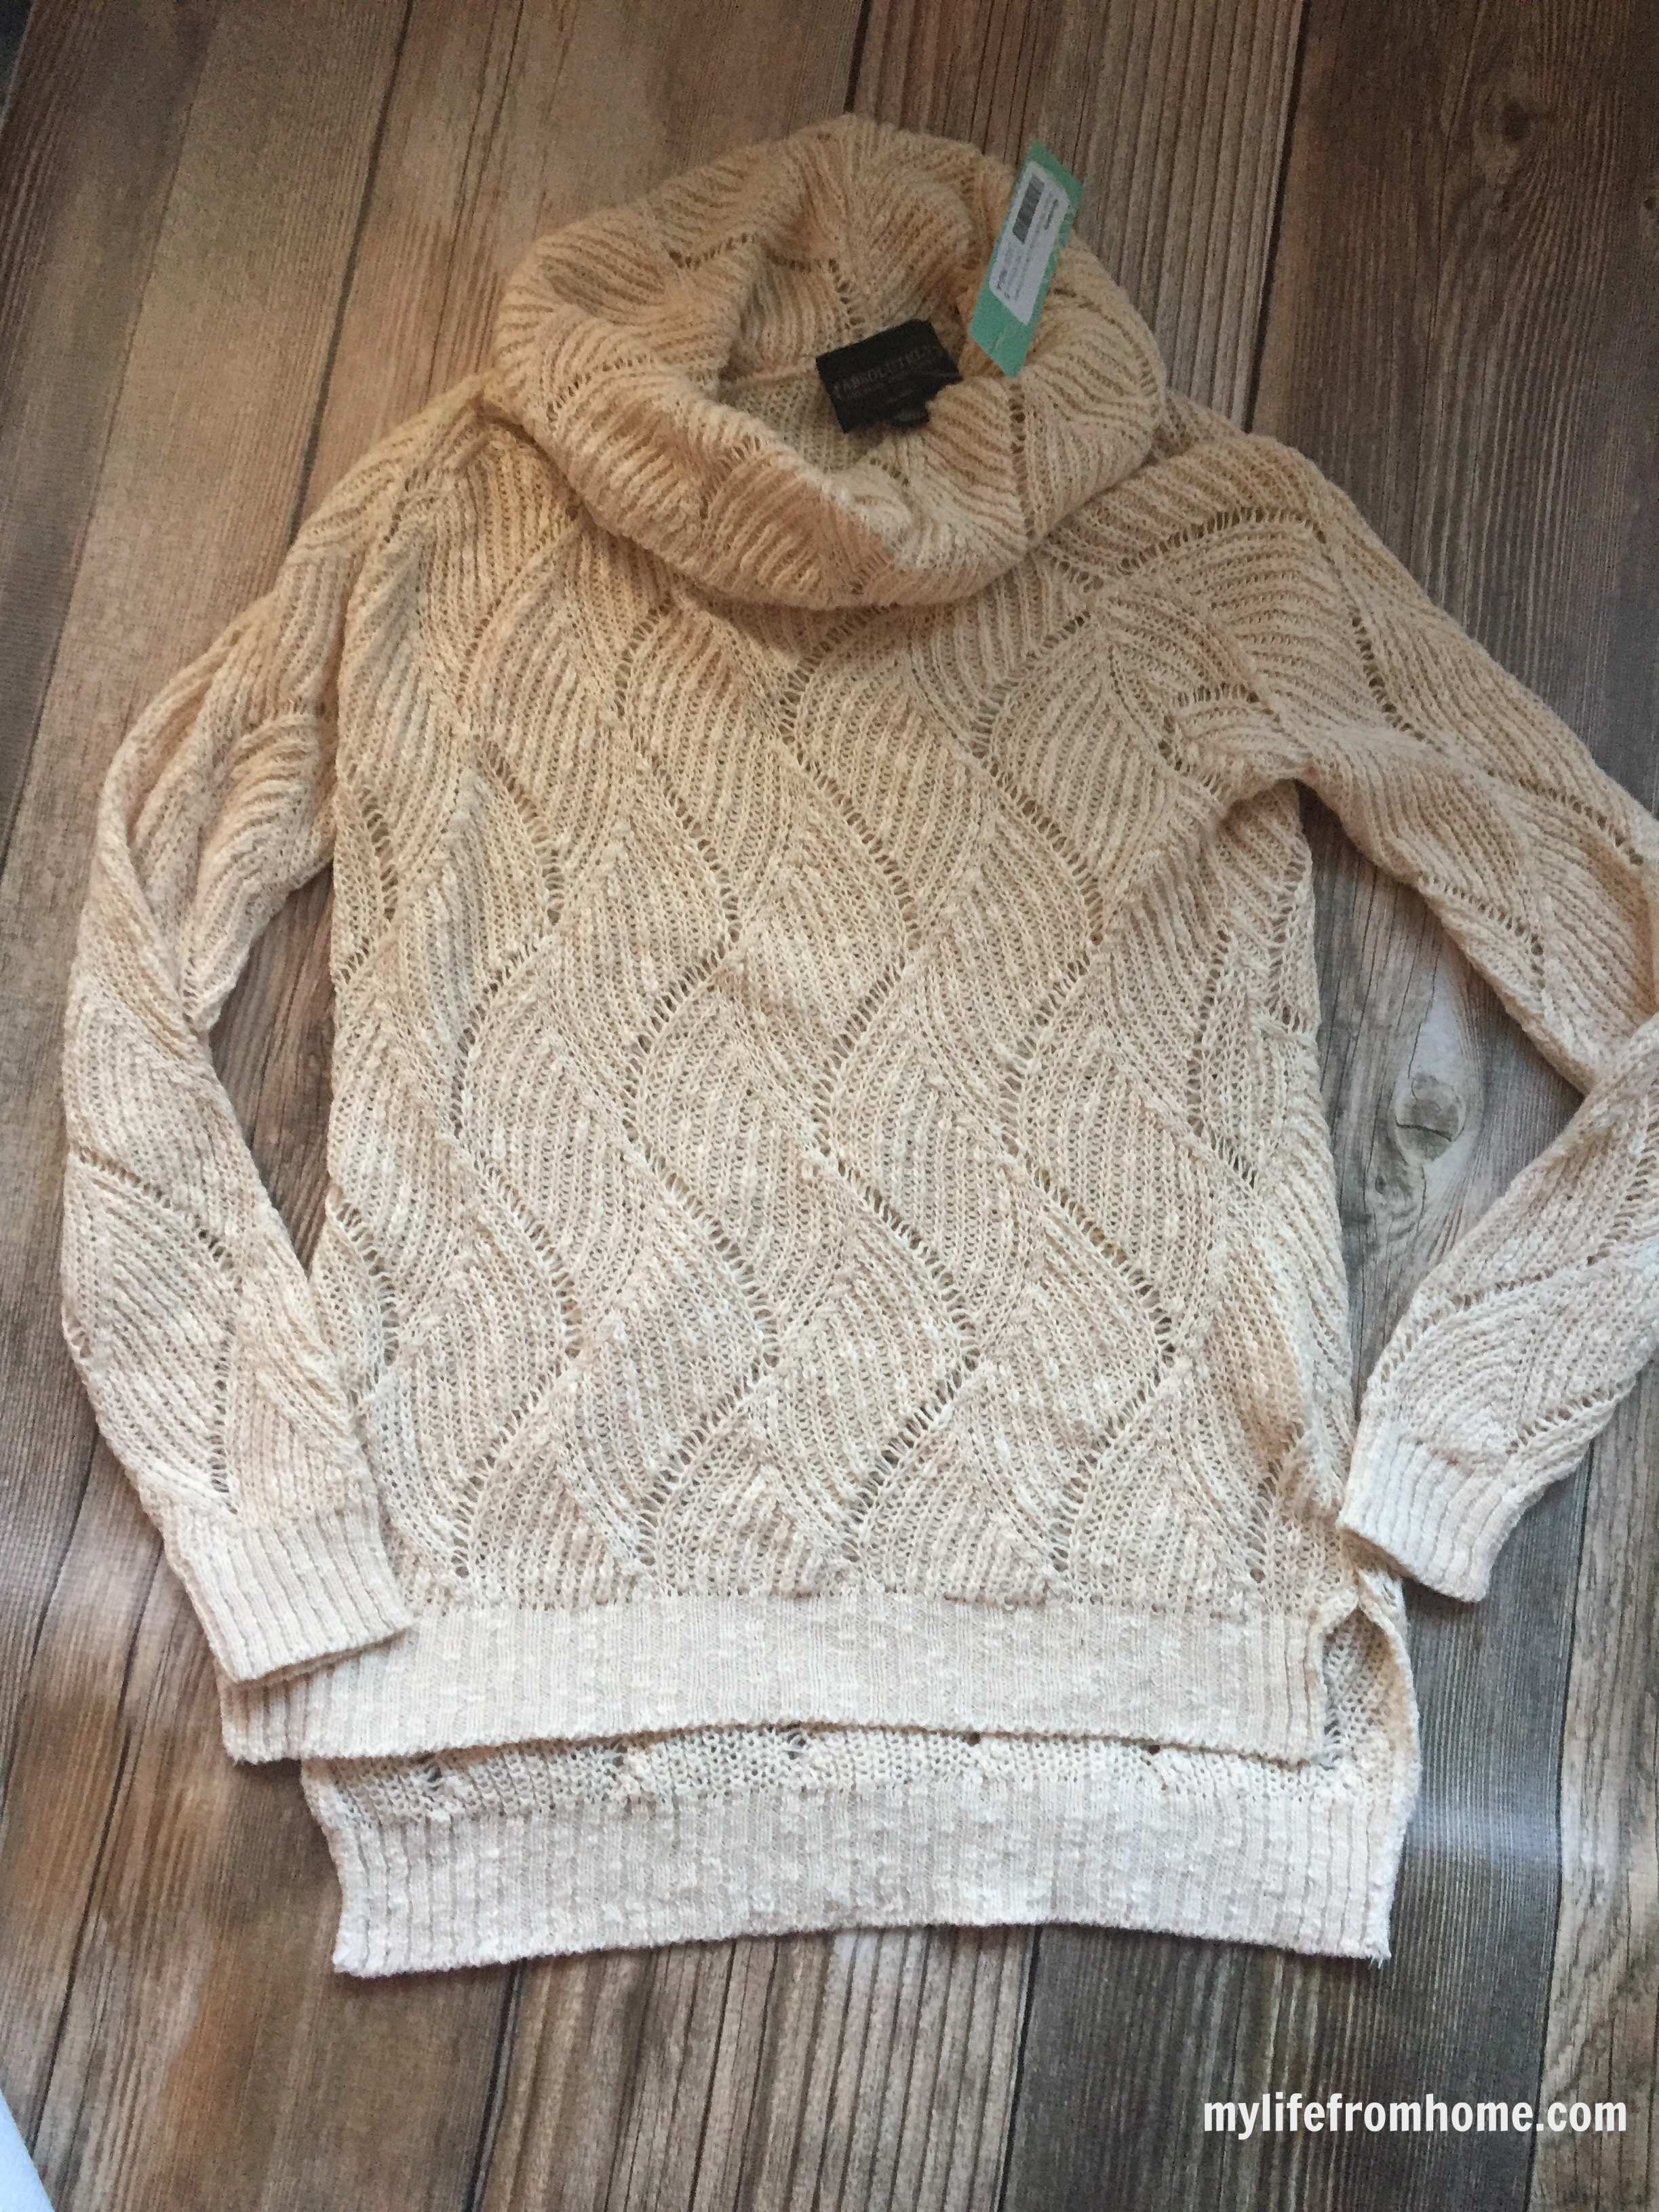 Knit Turtleneck Sweater by www.whitecottagehomeandliving.com